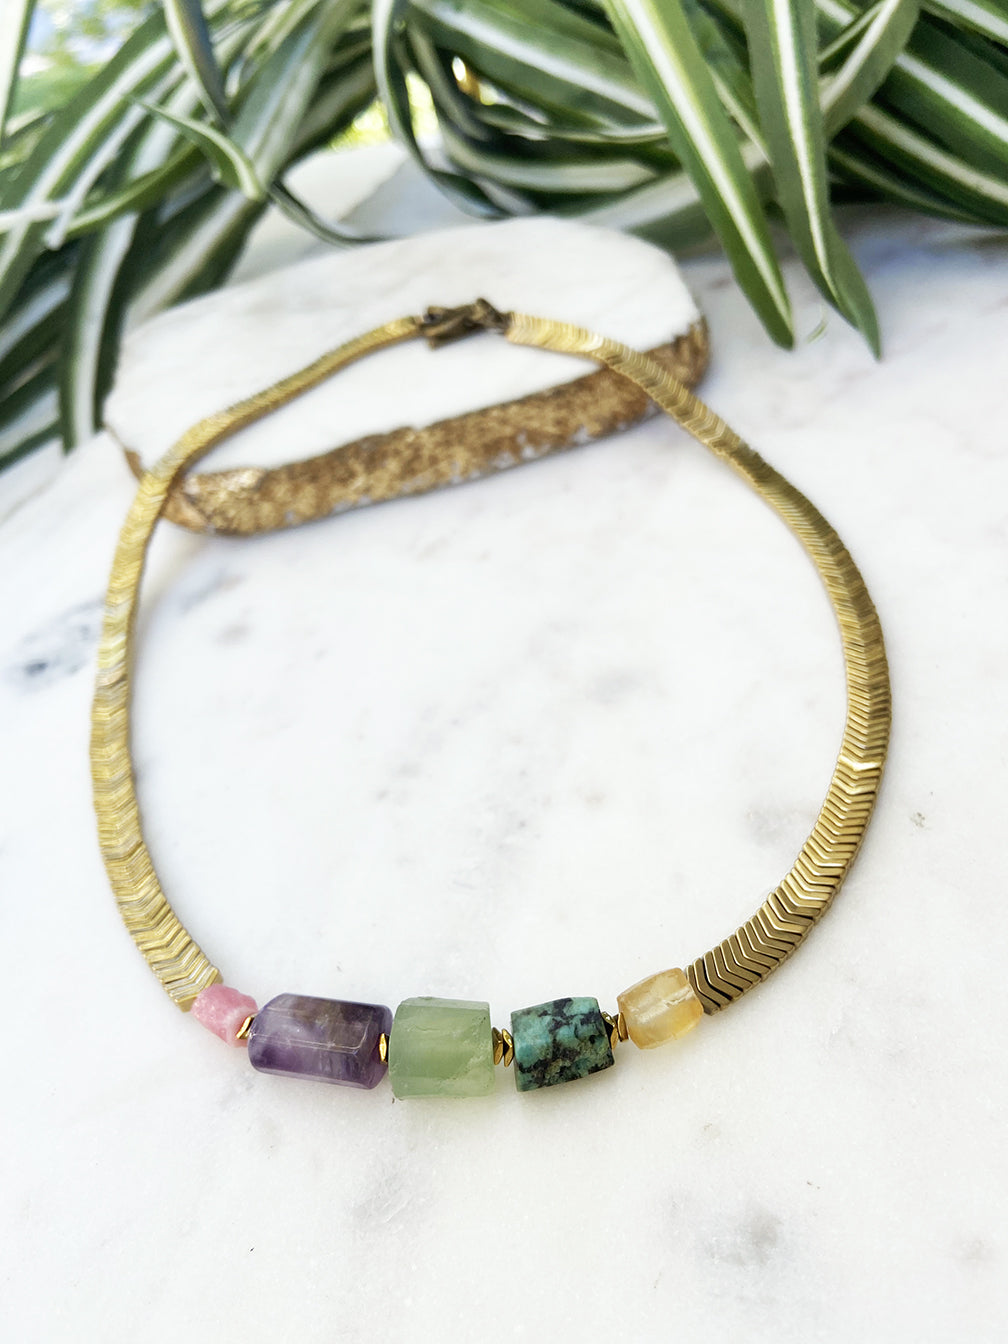 Groove short necklace - amethyst, turquoise and citrine